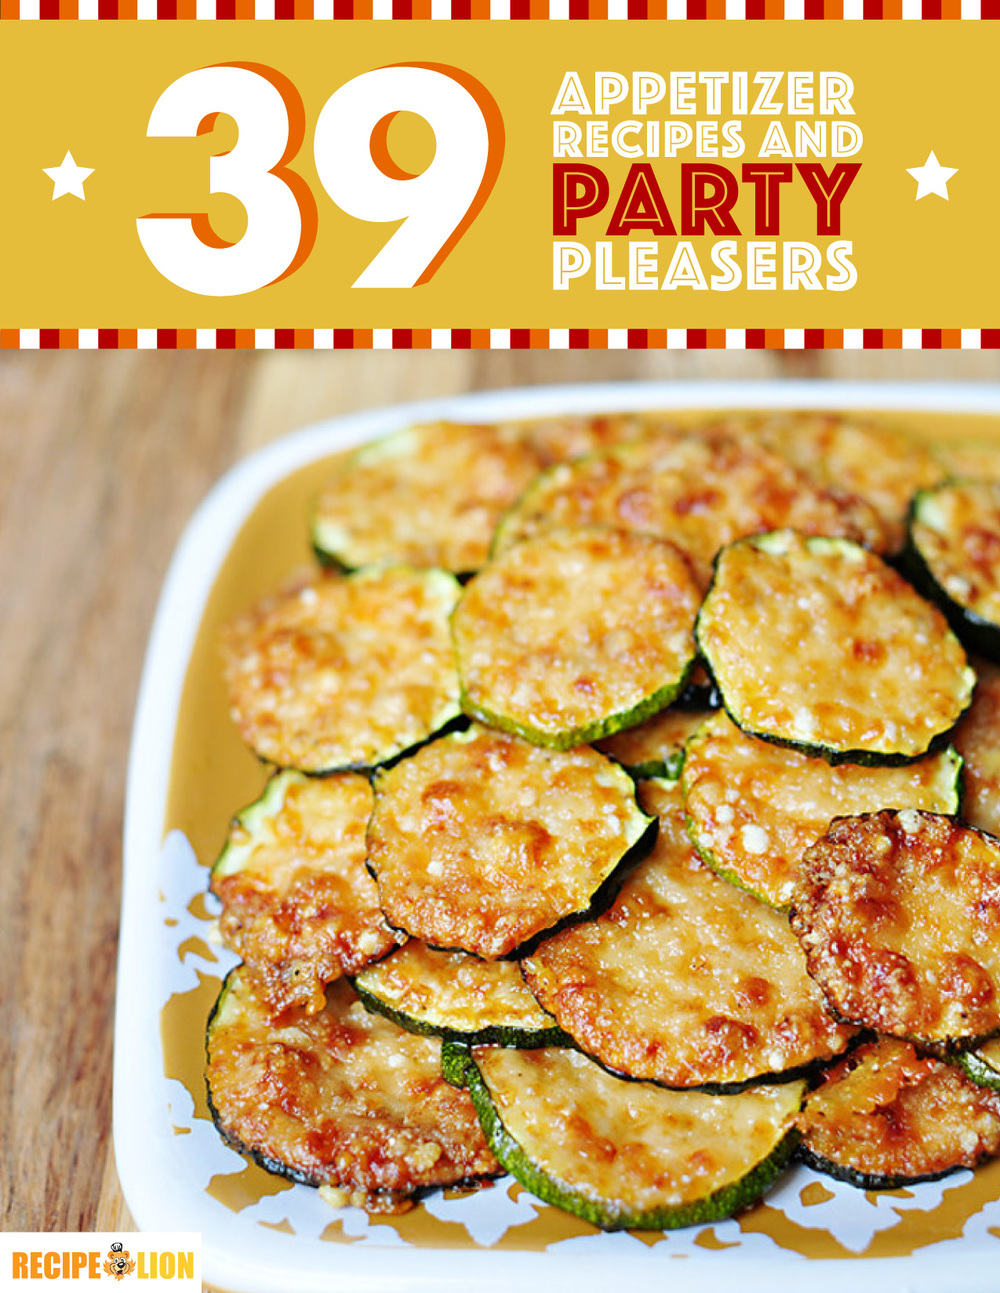 39 Appetizer Recipes And Party Pleasers Free ECookbook